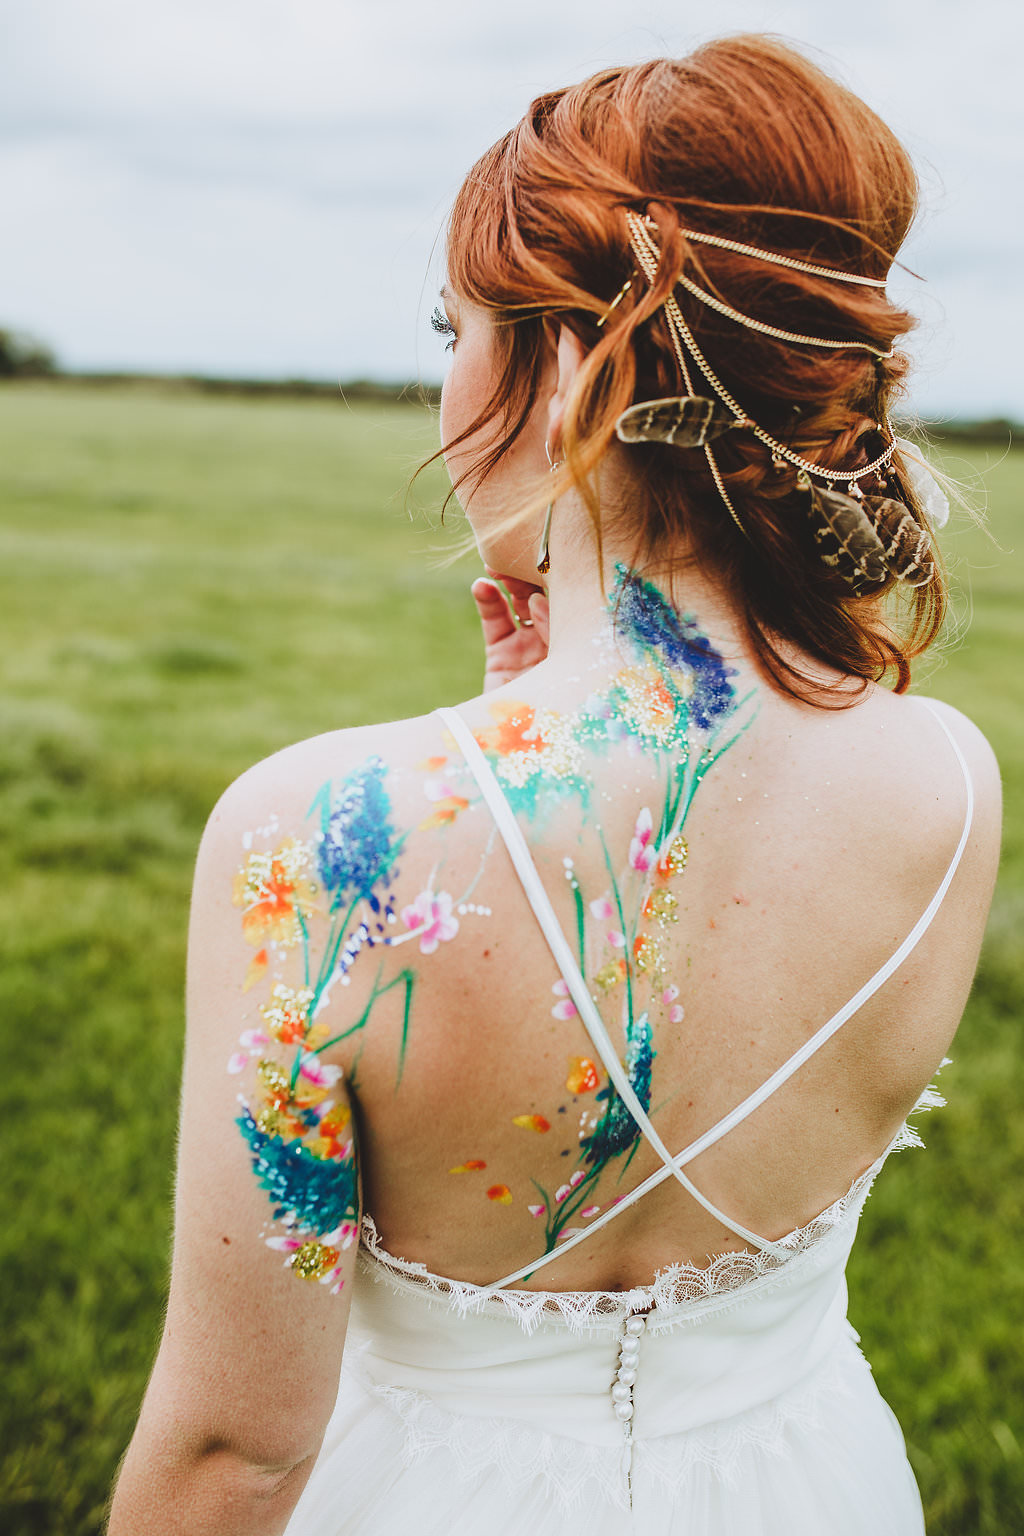 Bohemian Tipi Inspiration with Hippie Styling, Painted Tattoos and Tie-Dye